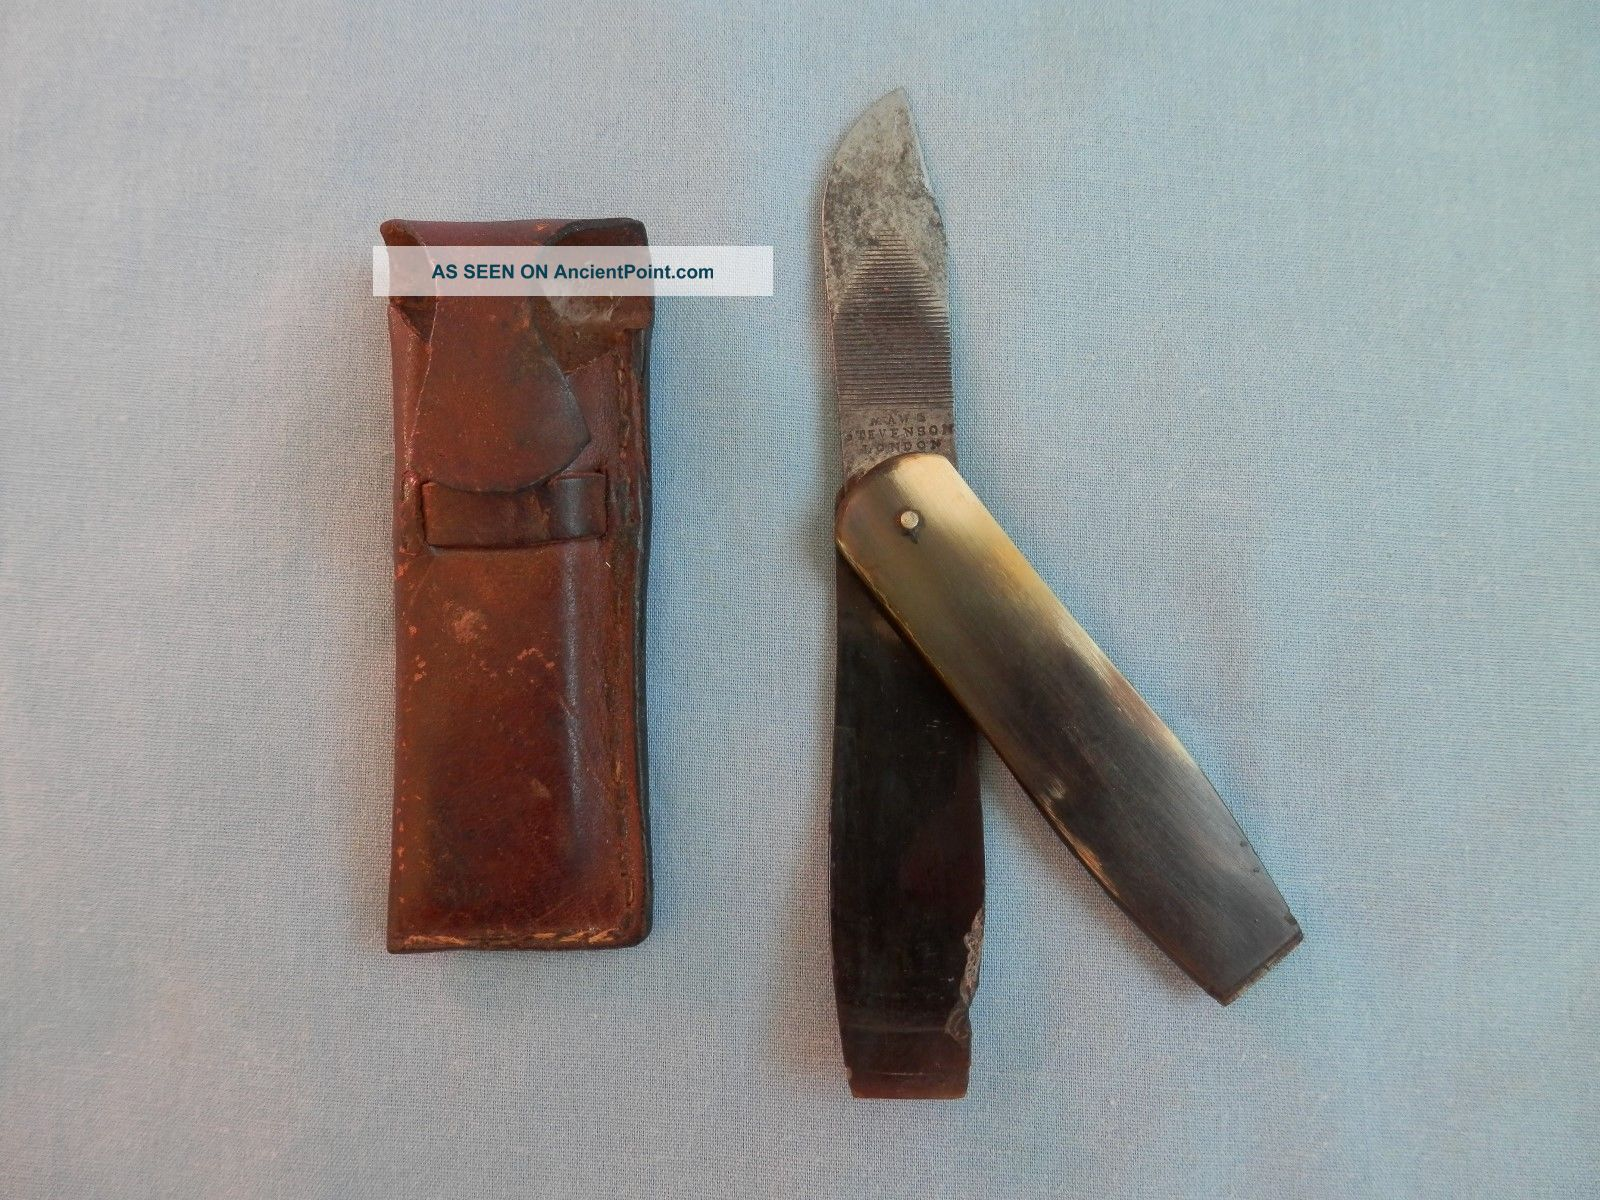 Antique Pocket Scalpel Or Vets Or Post Mortem.  Maw And Stevenson 1841 - 1843 Other Medical Antiques photo